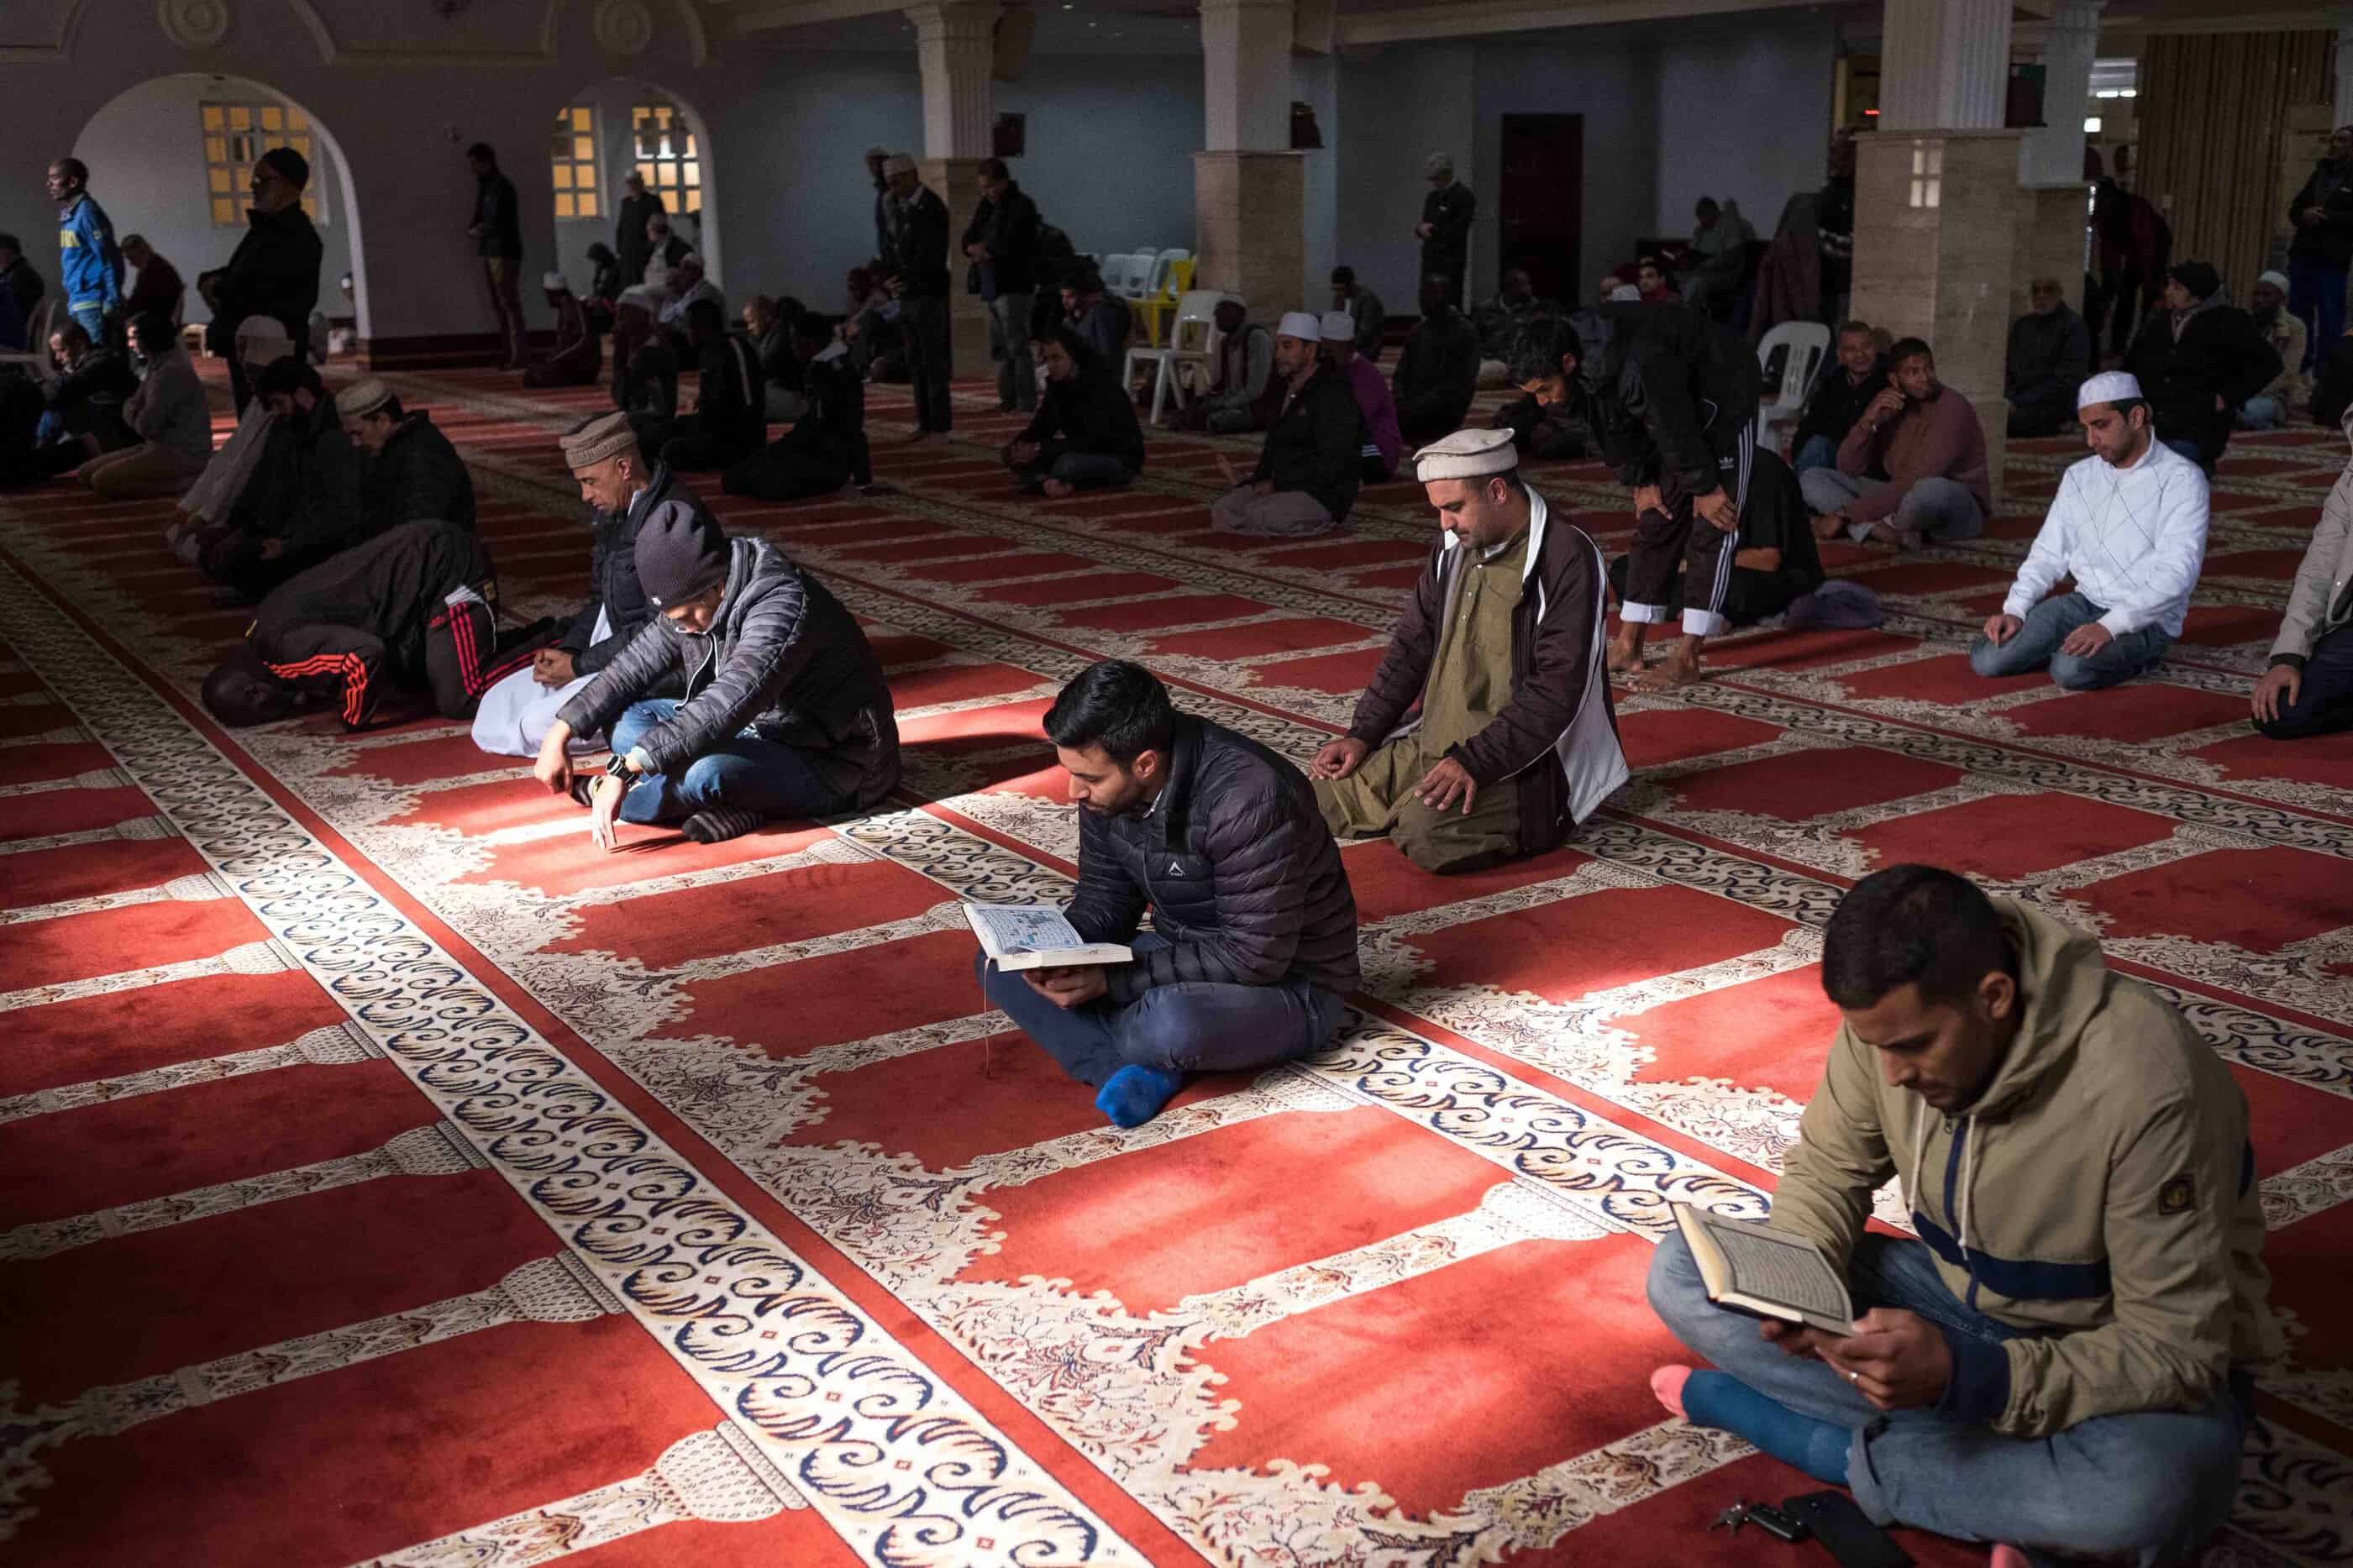 20 May 2019: Men reading the Quran and praying at the historic mosque in District Six.